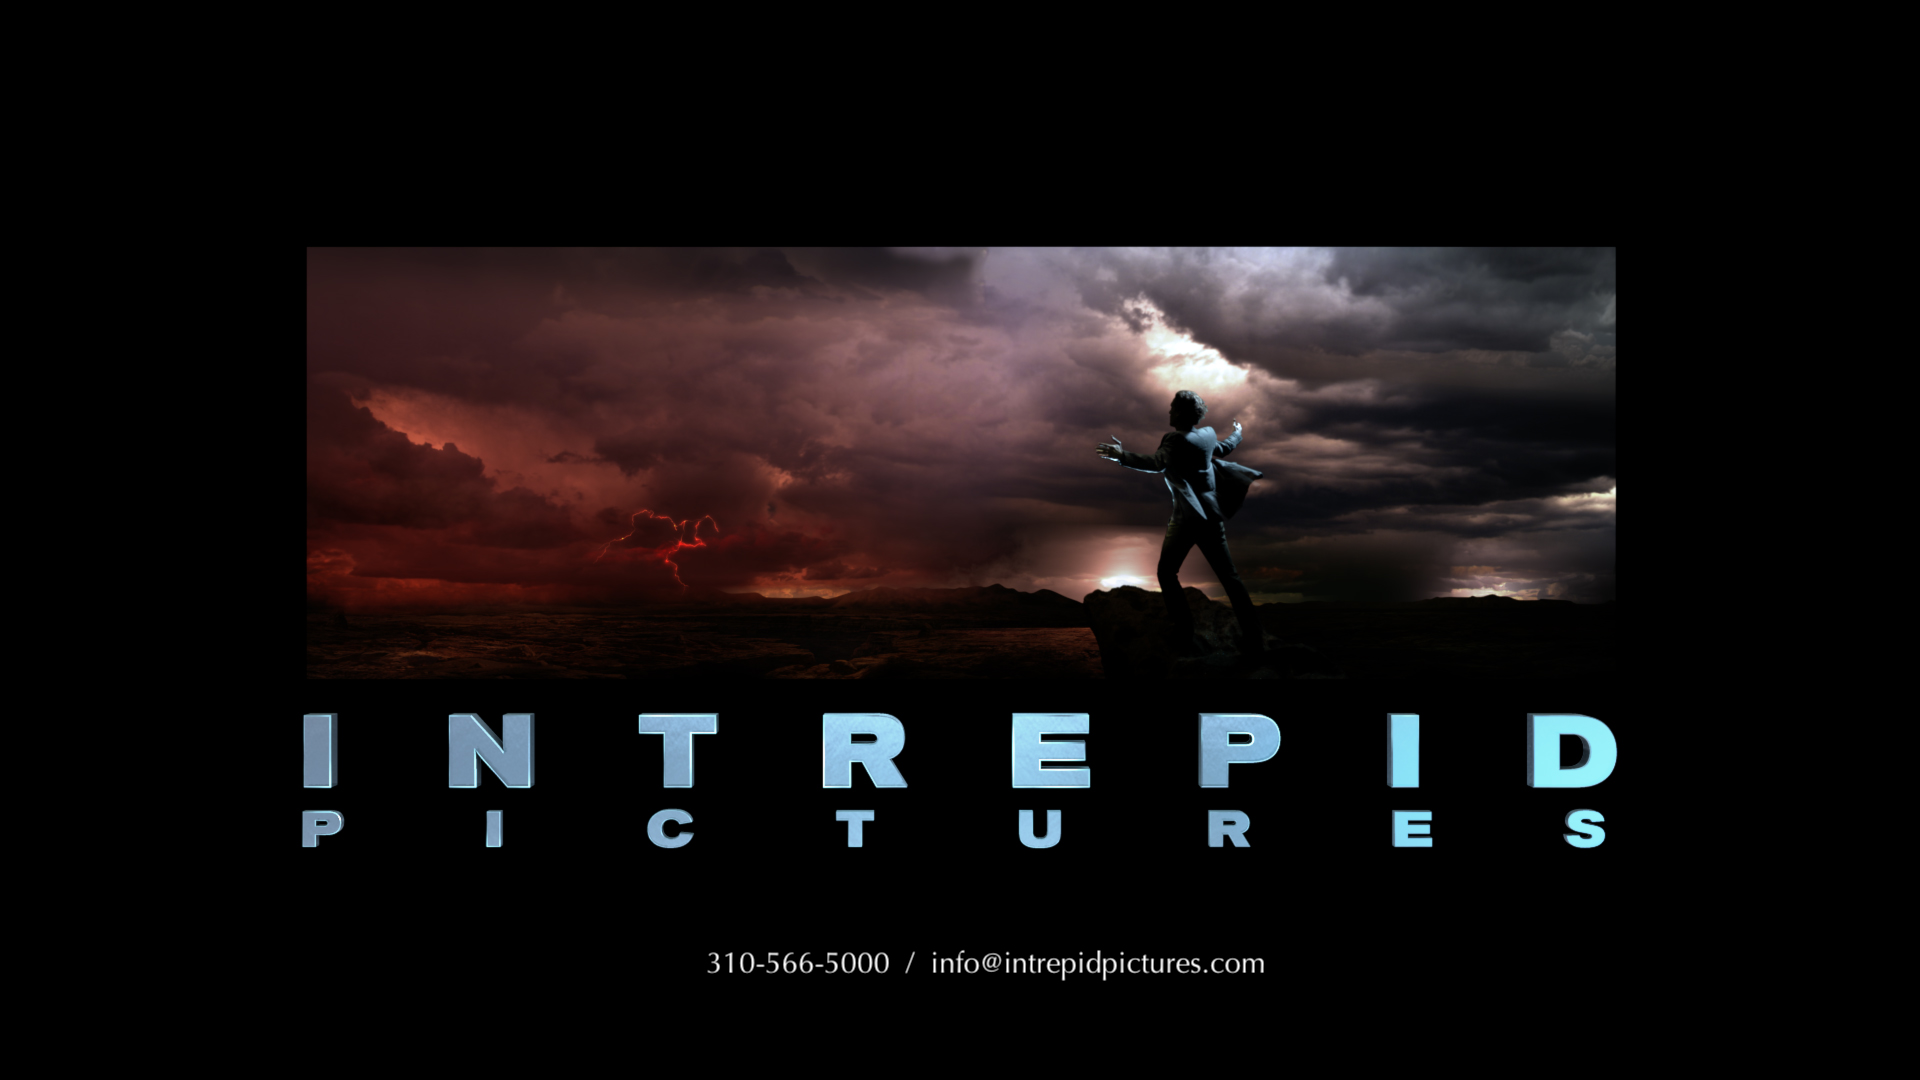 Intrepid Pictures - Check Back Soon!